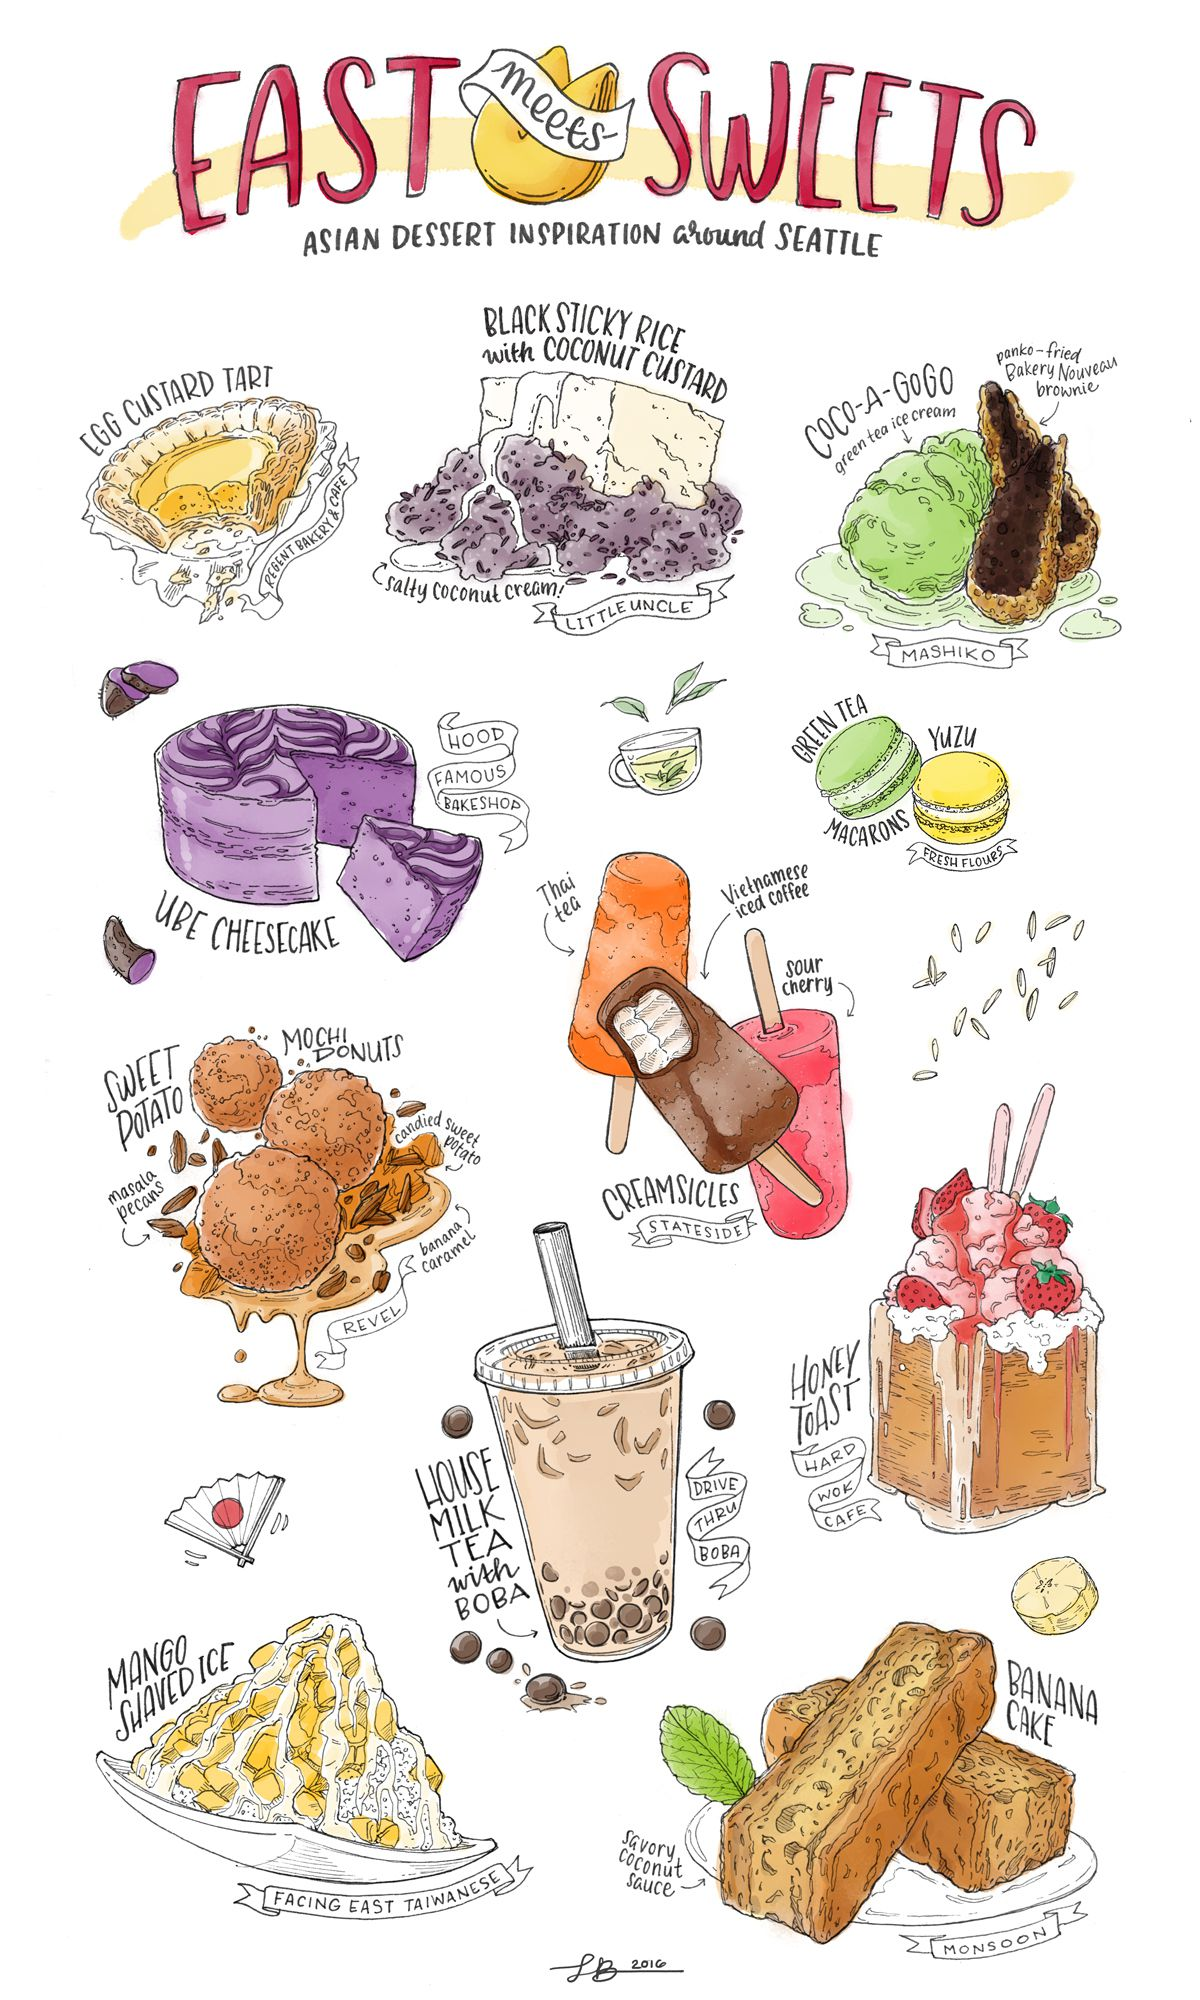 Colorful illustrations of Asian desserts at Seattle restaurants.